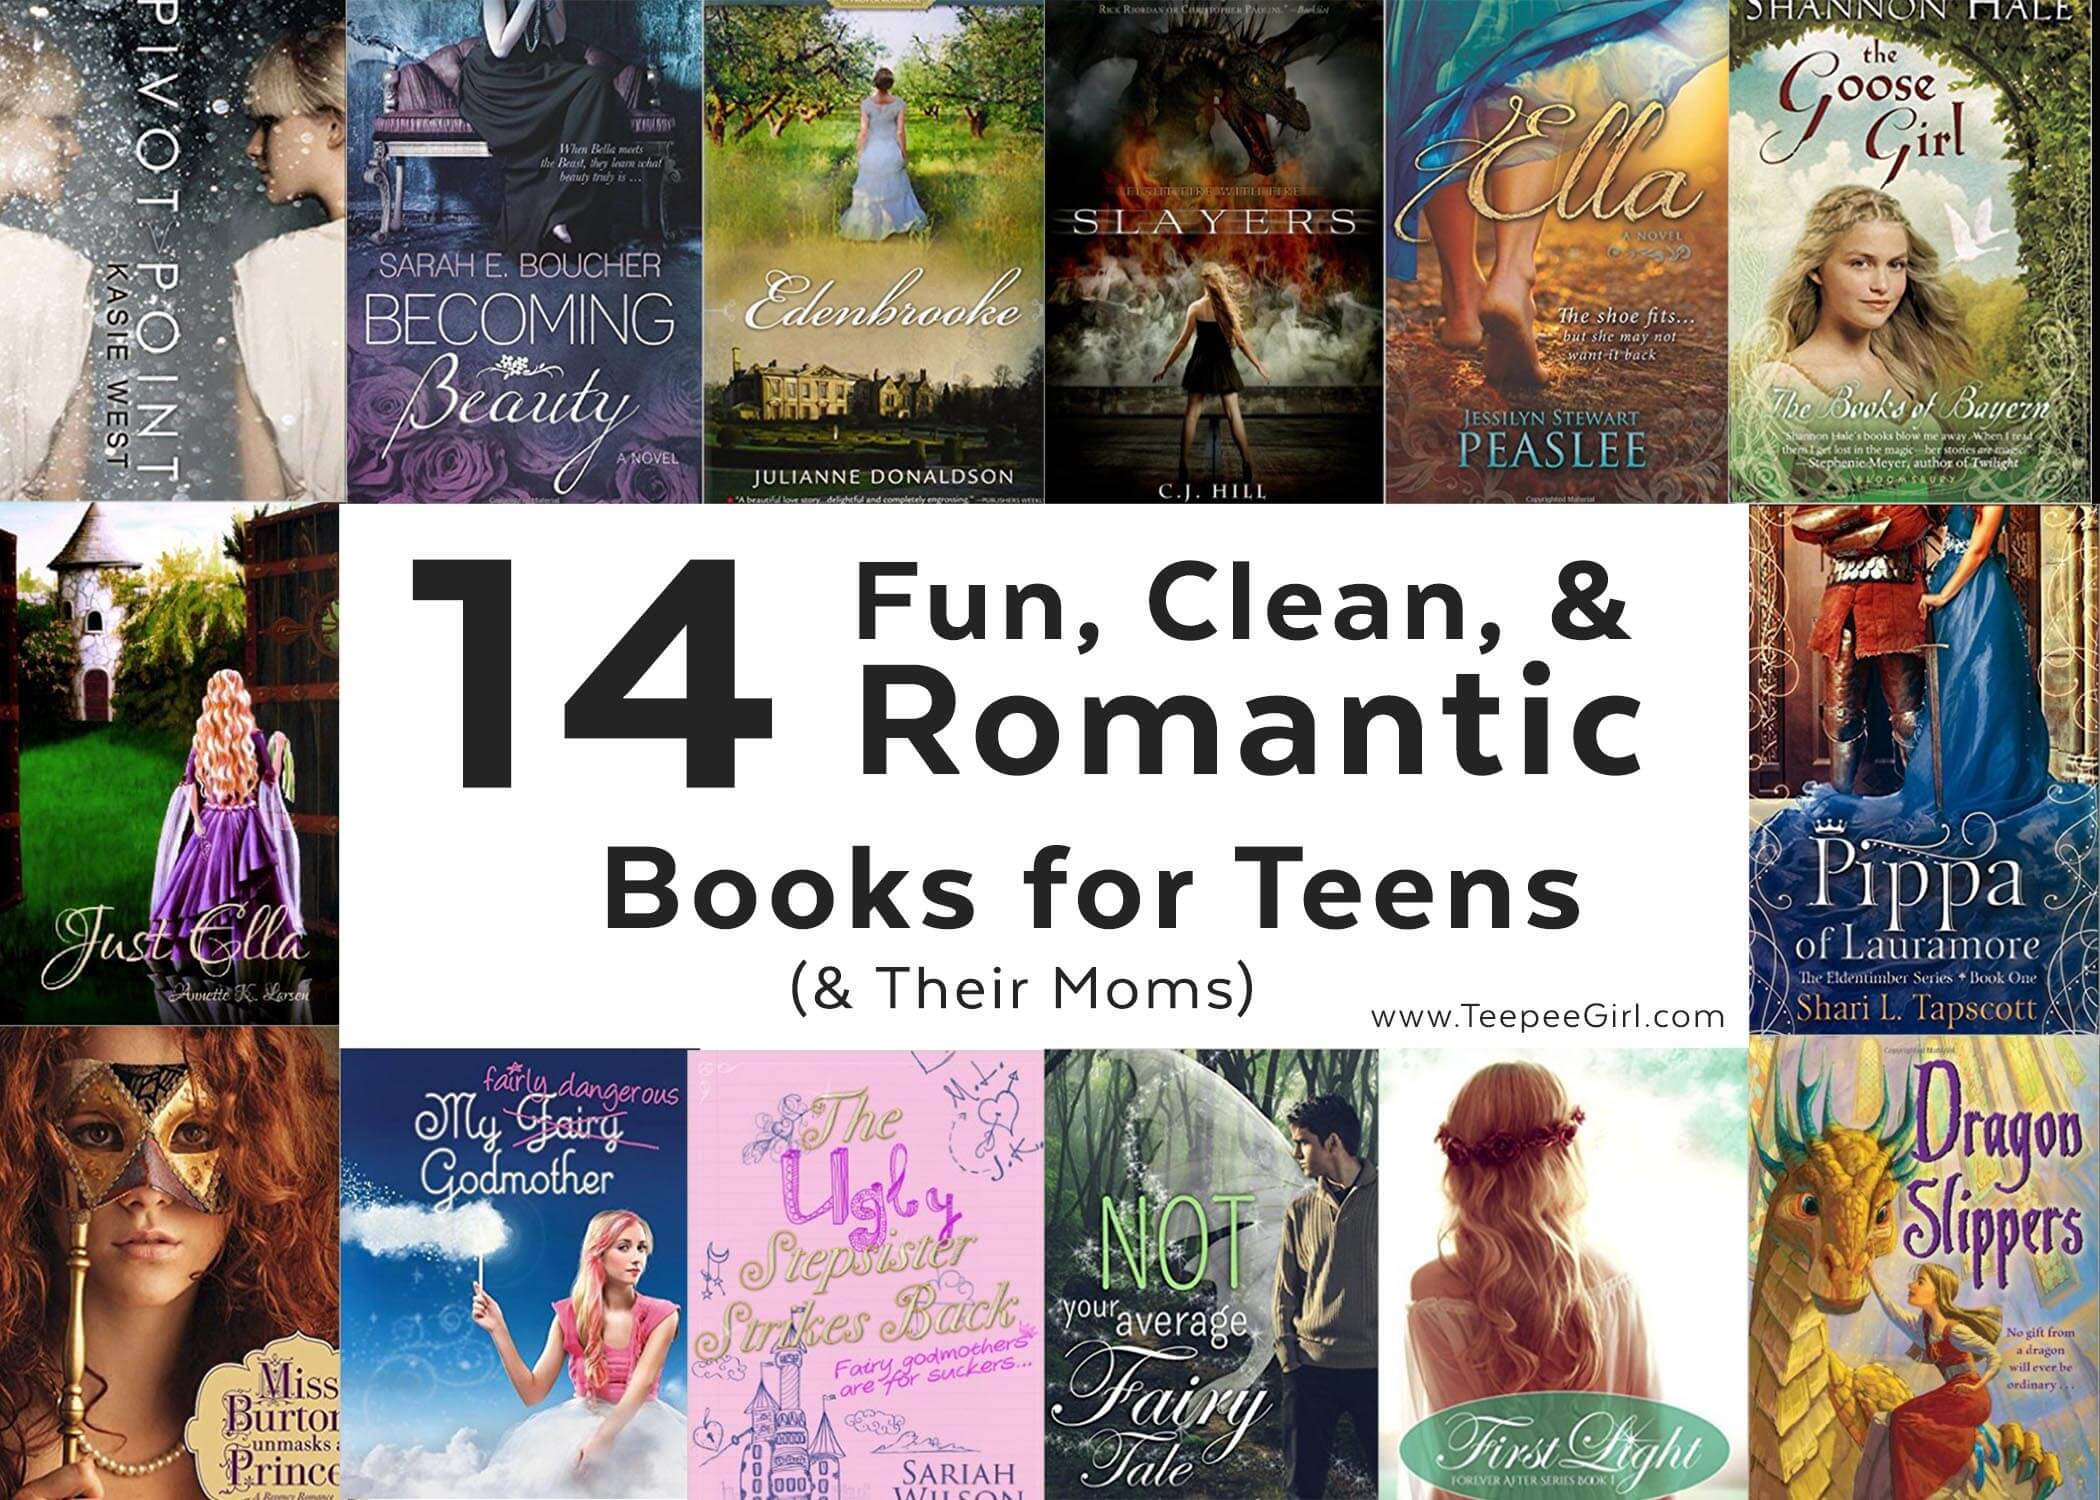 14 Fun, Clean, & Romantic Books for Teens